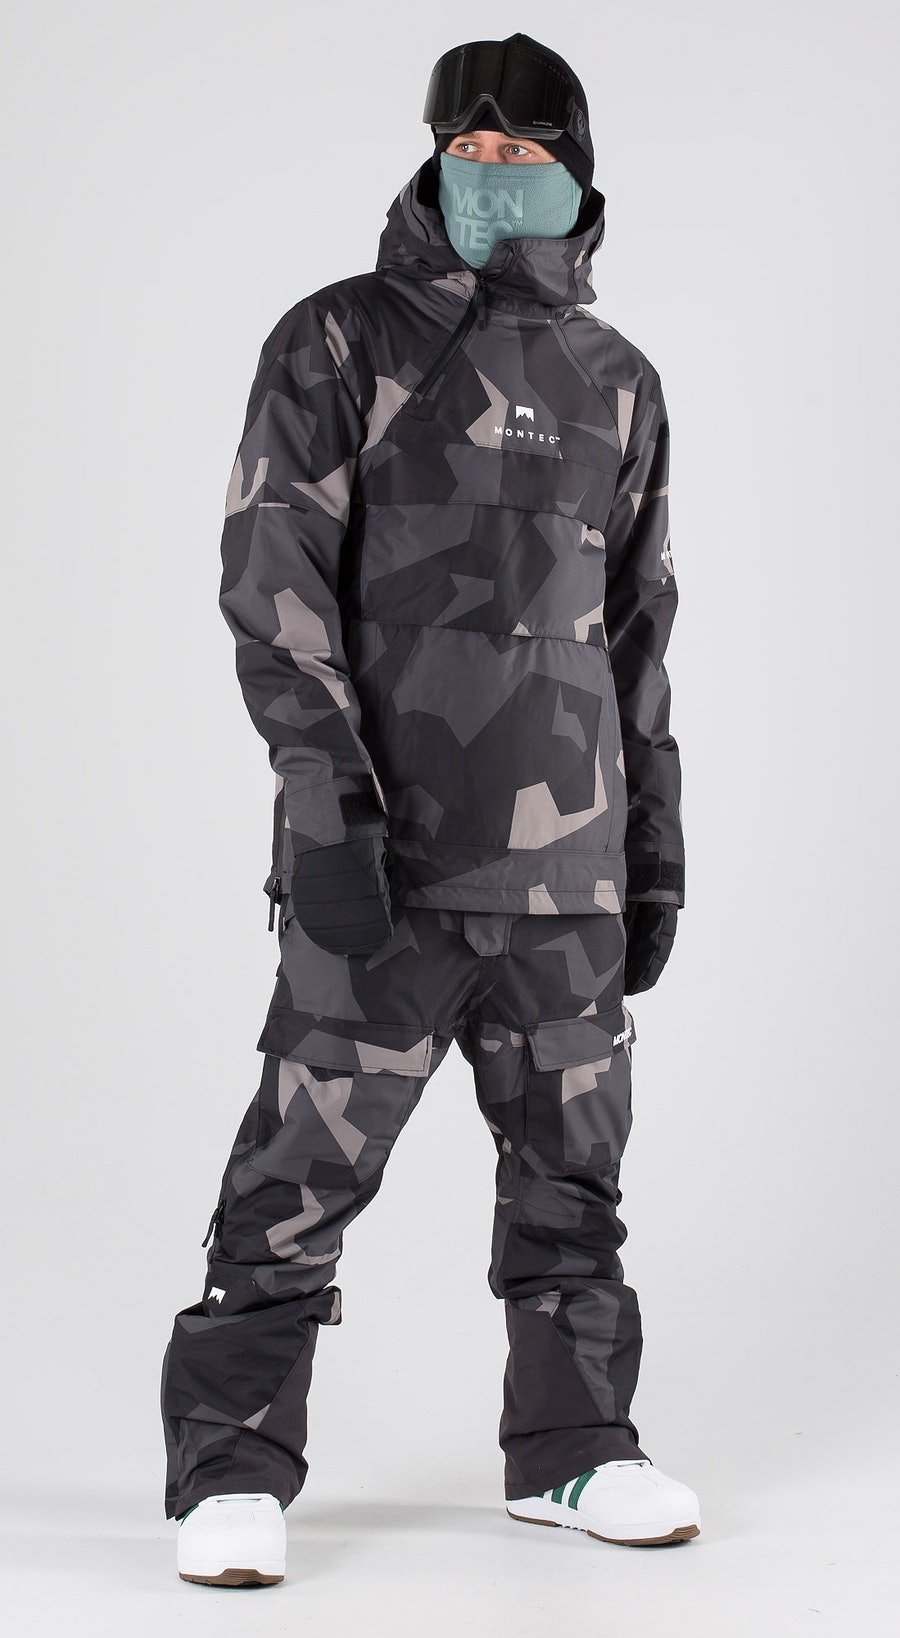 Montec Dune Night Camo Snowboard clothing Multi